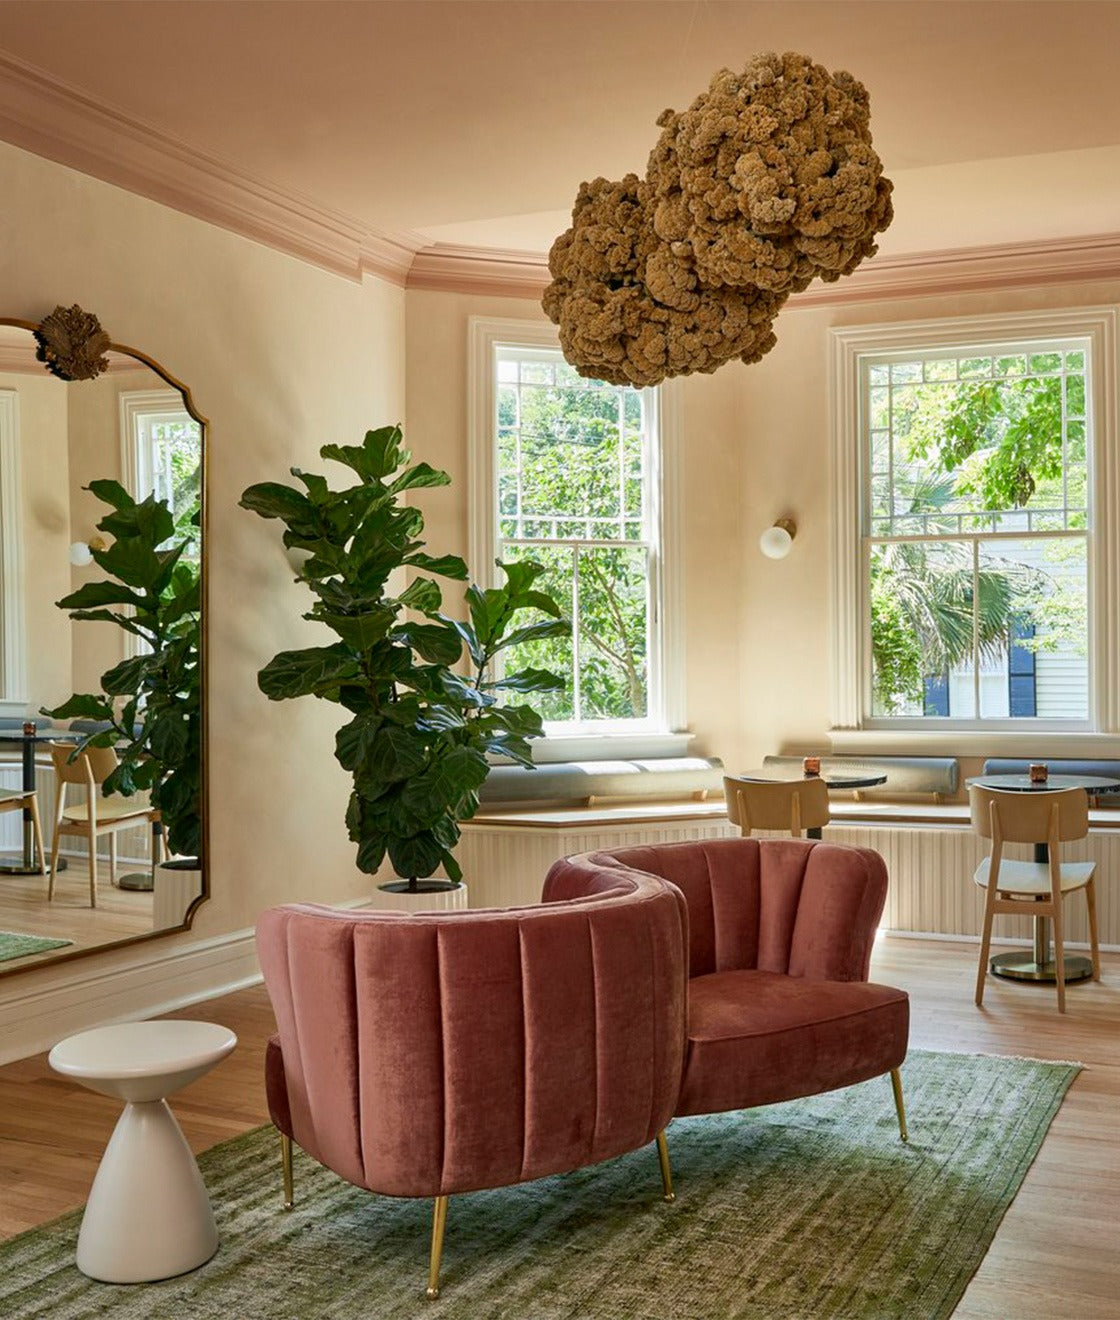 3. Incorporate Pink Seating for a Steal